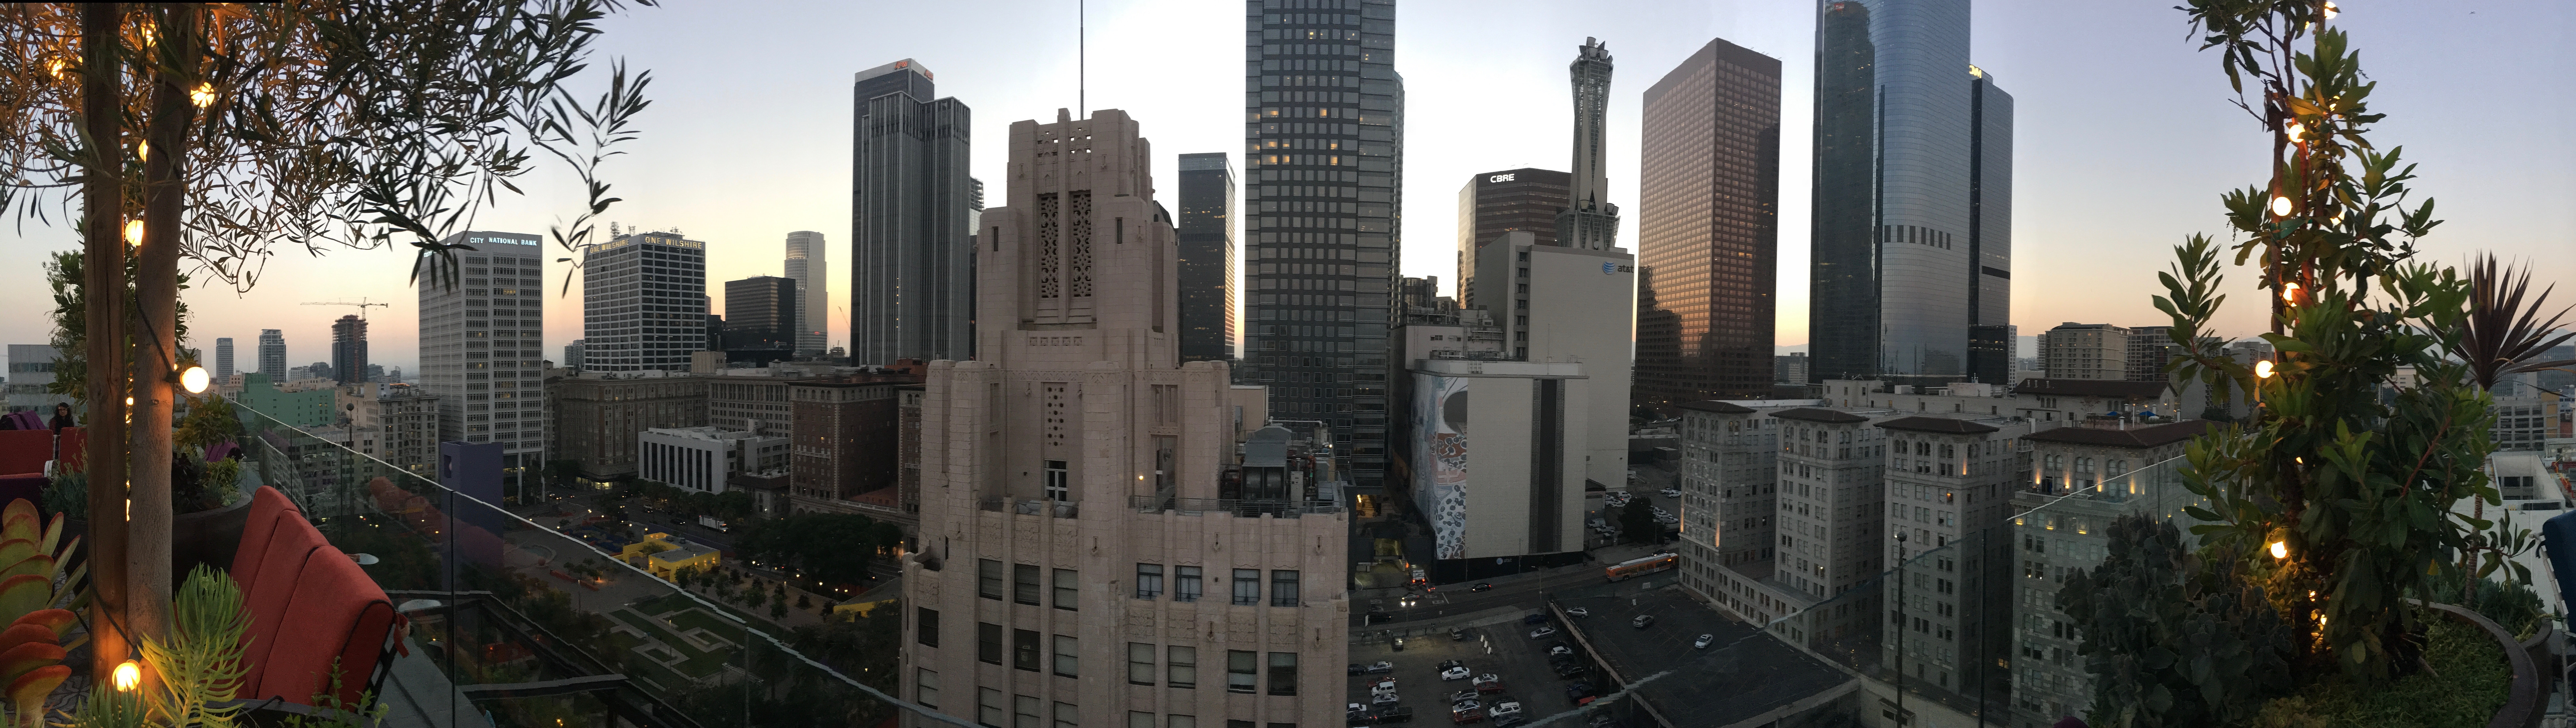 panorama from the rooftop